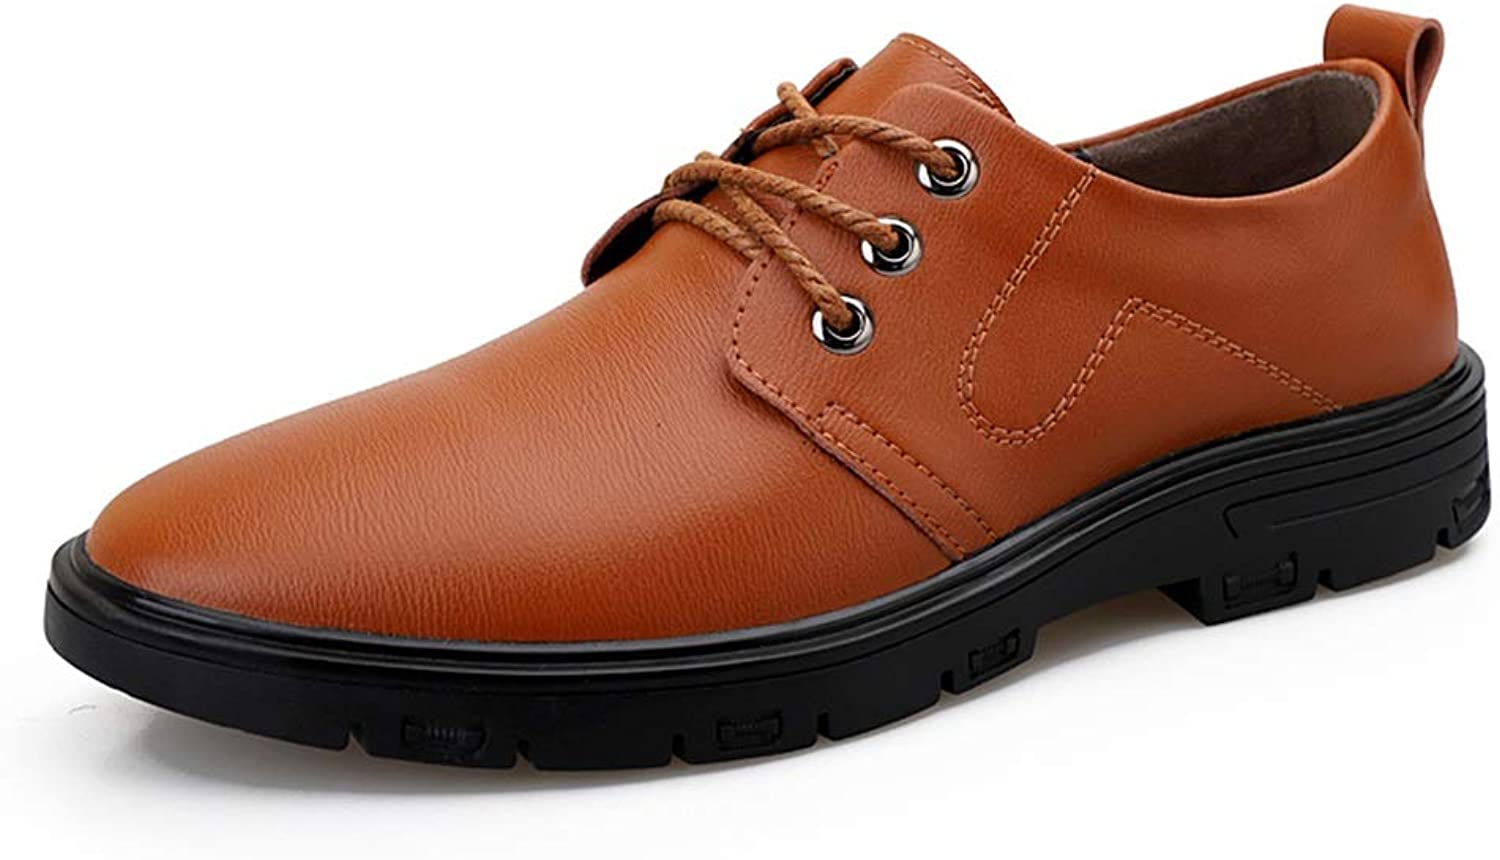 SRY-Fashion shoes Oxford shoes for Men Stately shoes Lace Up Style OX Leather Classic Solid color Insouciant Business Outsole